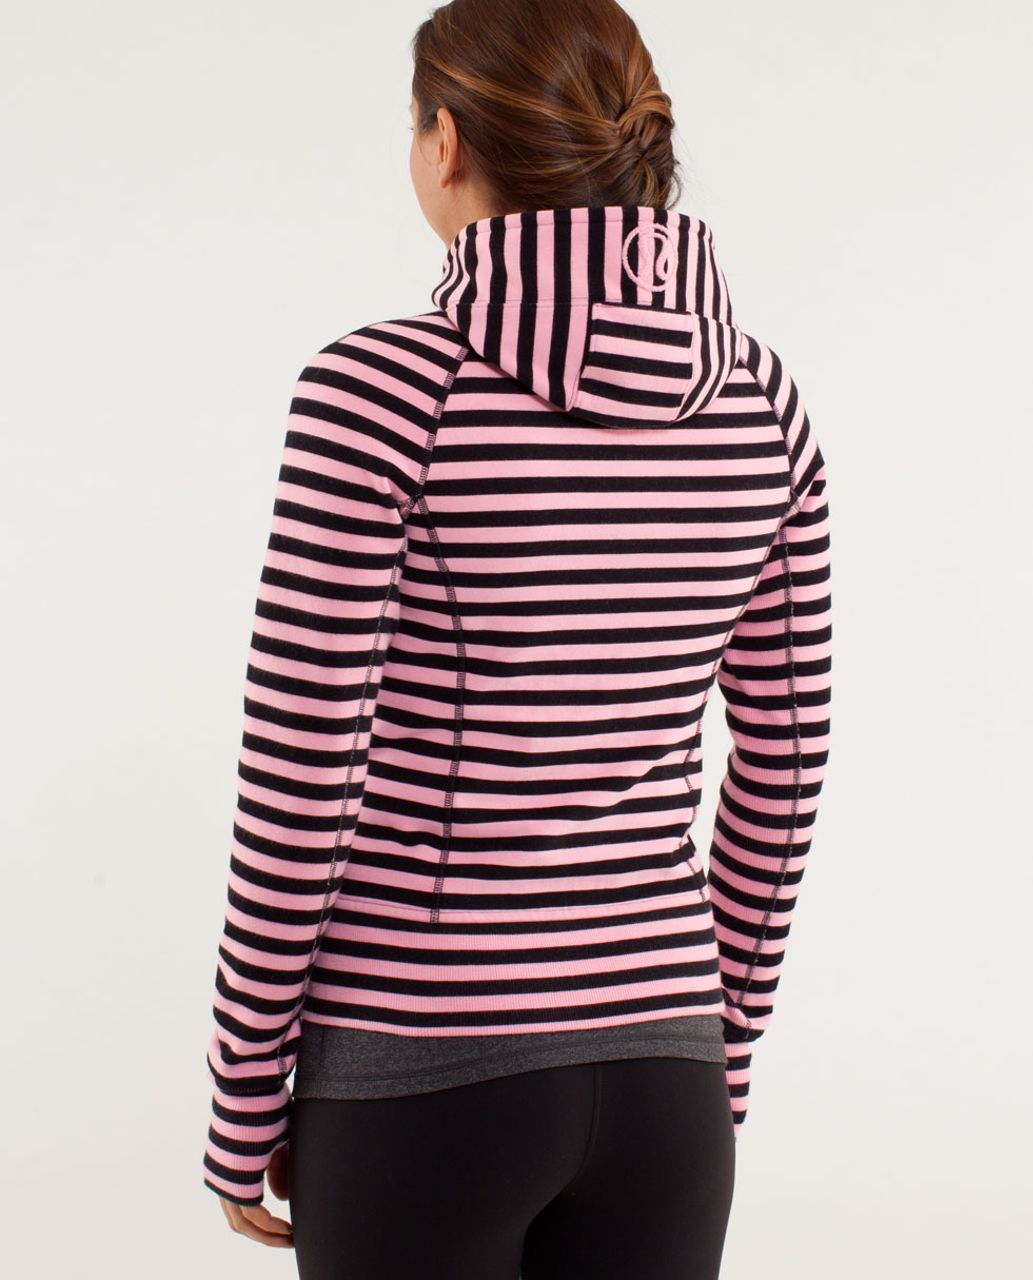 Lululemon Scuba Hoodie *Stretch - Sea Stripe Pink Shell Black